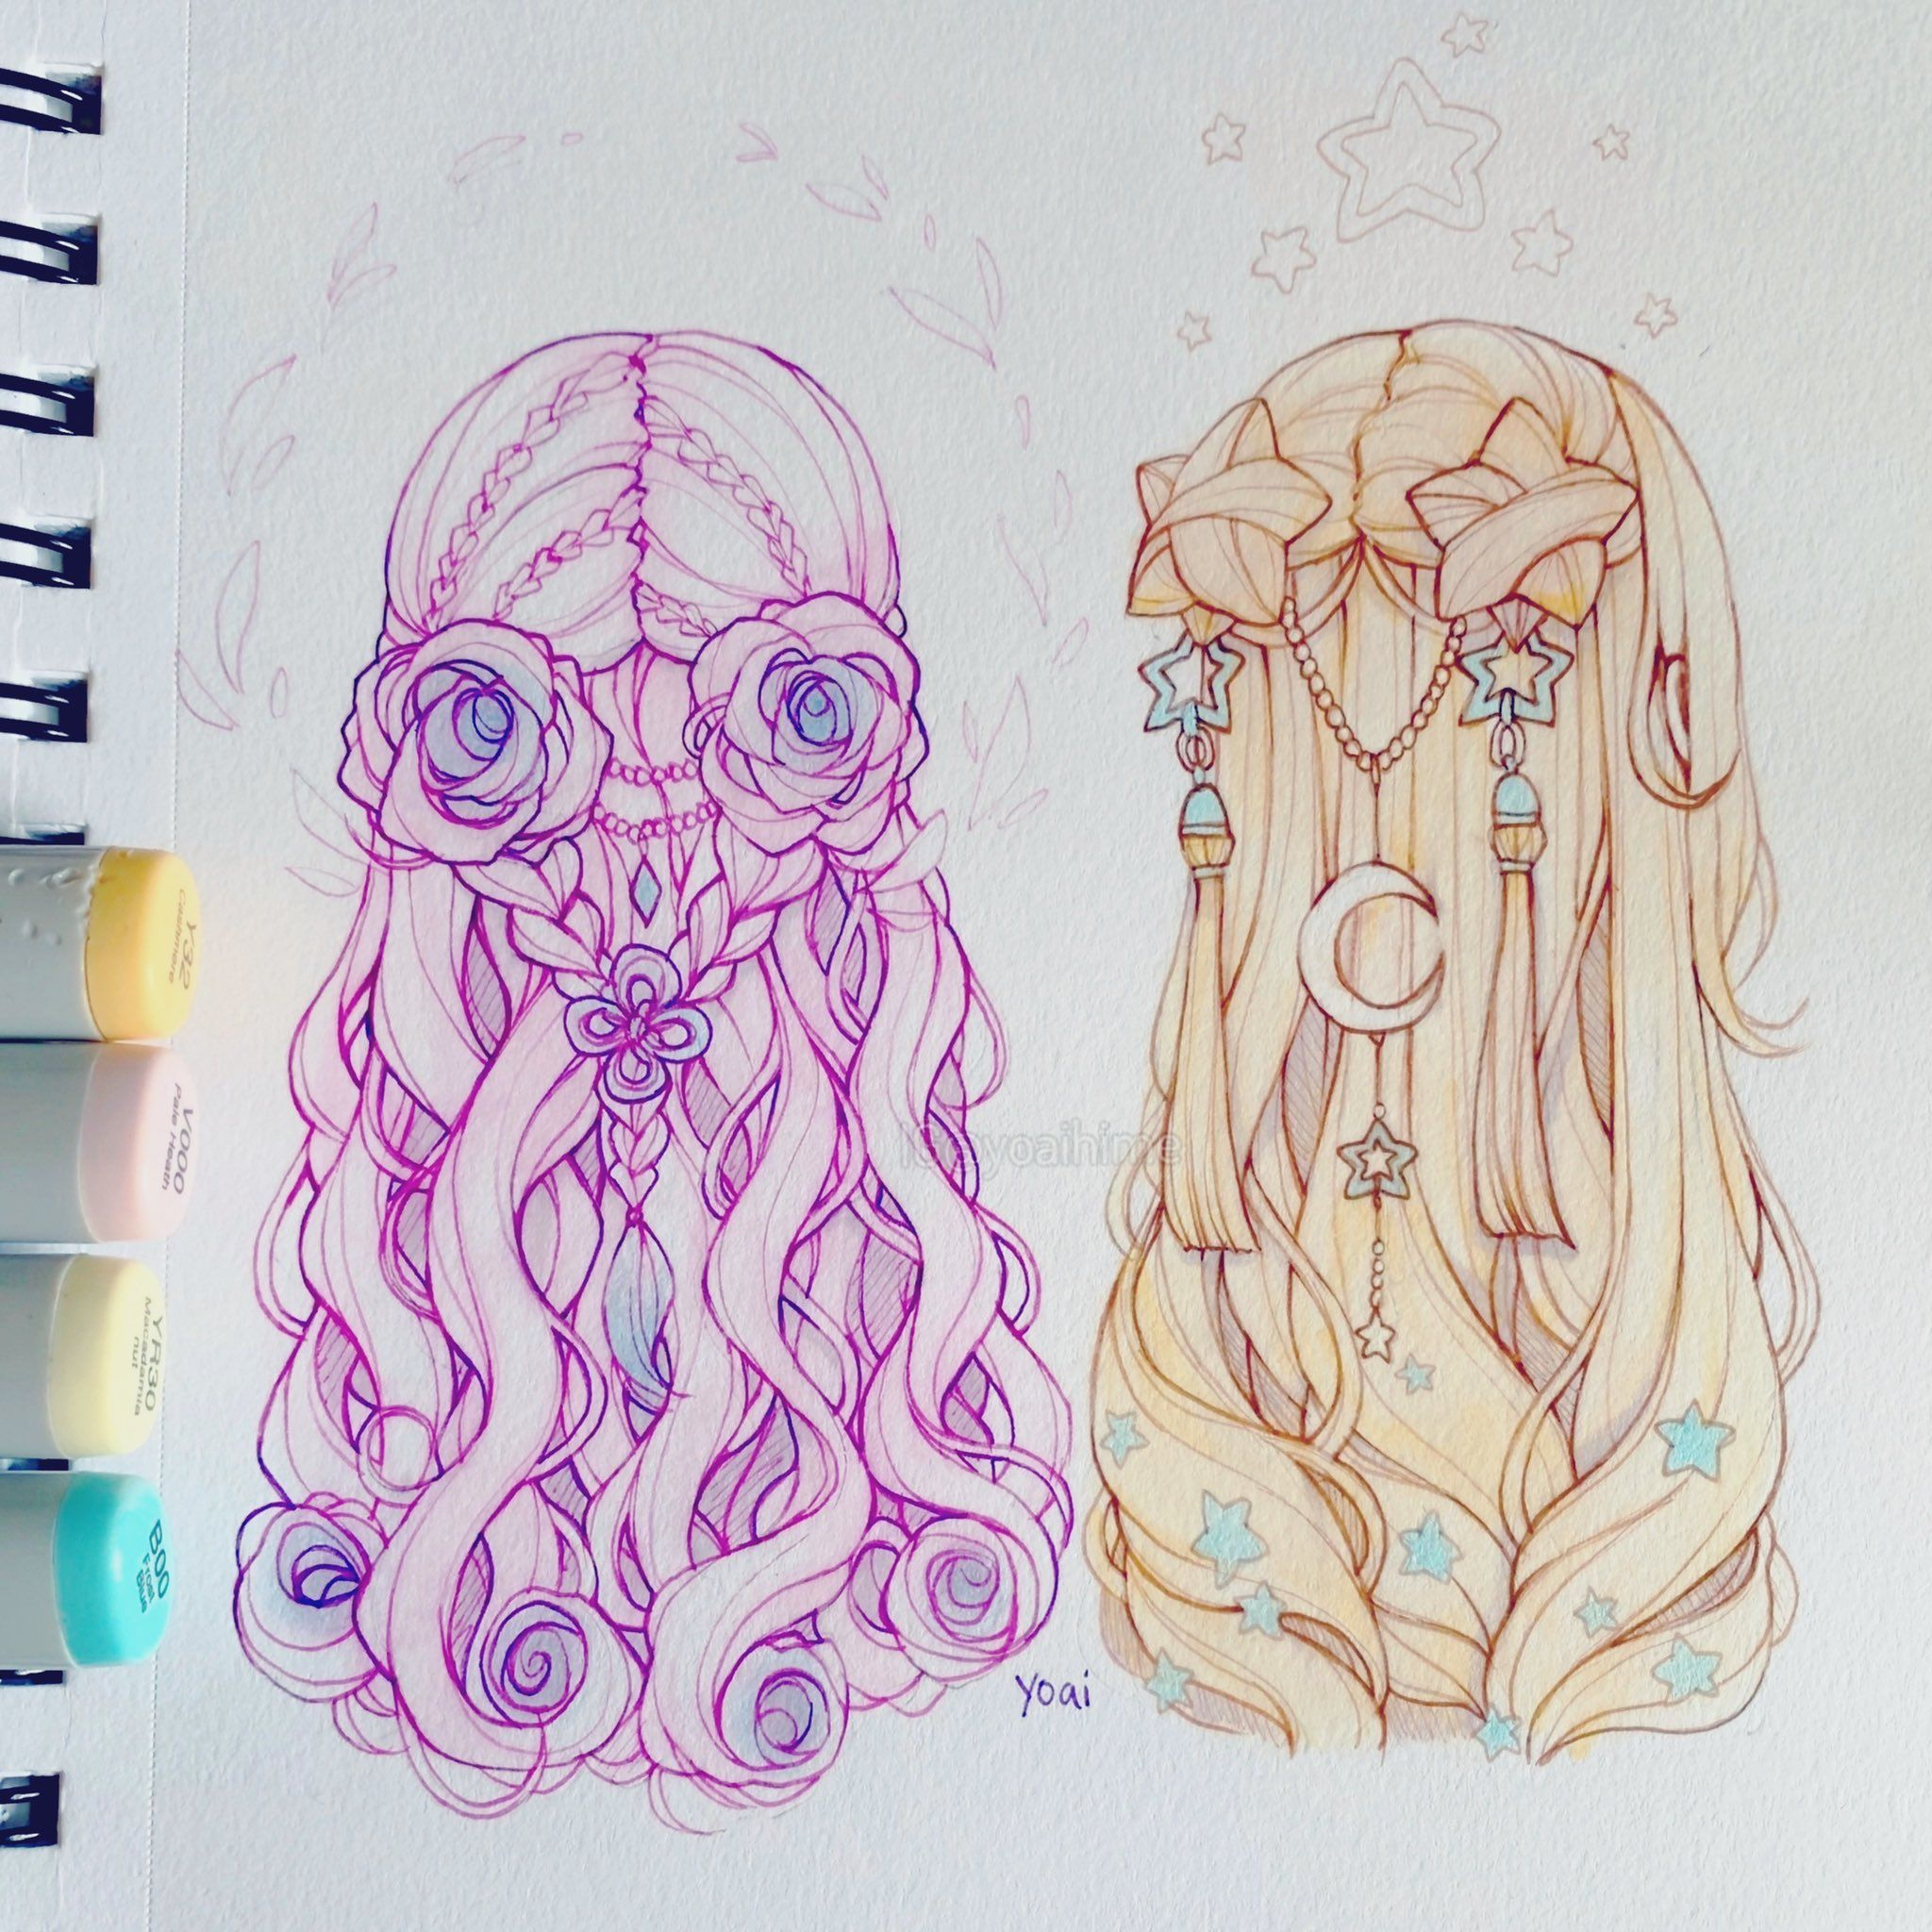 Photo of Flower hair…or star hair? ?⭐ By Yoai ✨ಠωಠ✨ @Yoaihime on Twitter